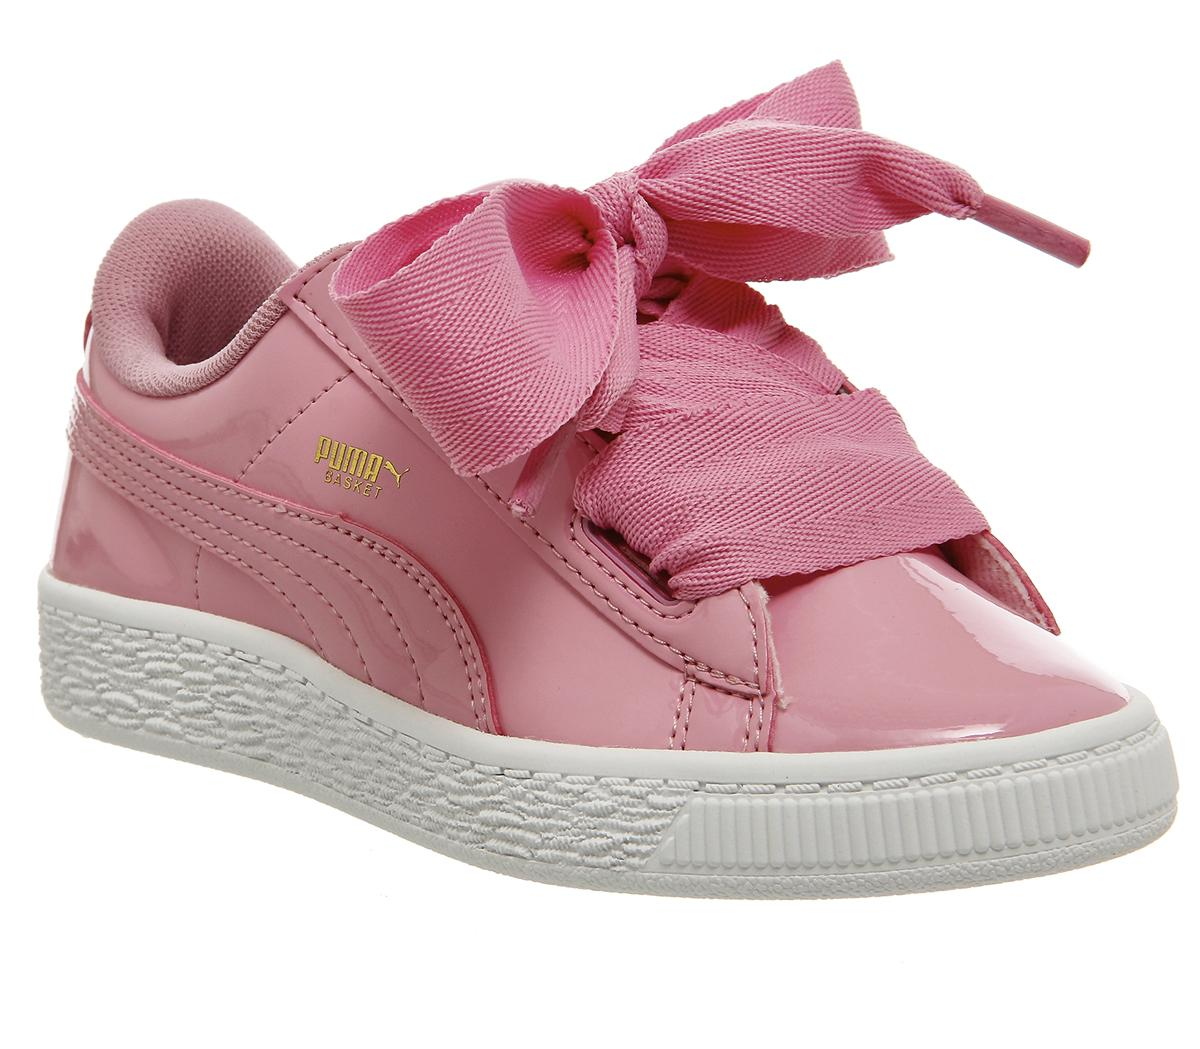 Kids Puma Basket Heart Ps Prism Pink Patent